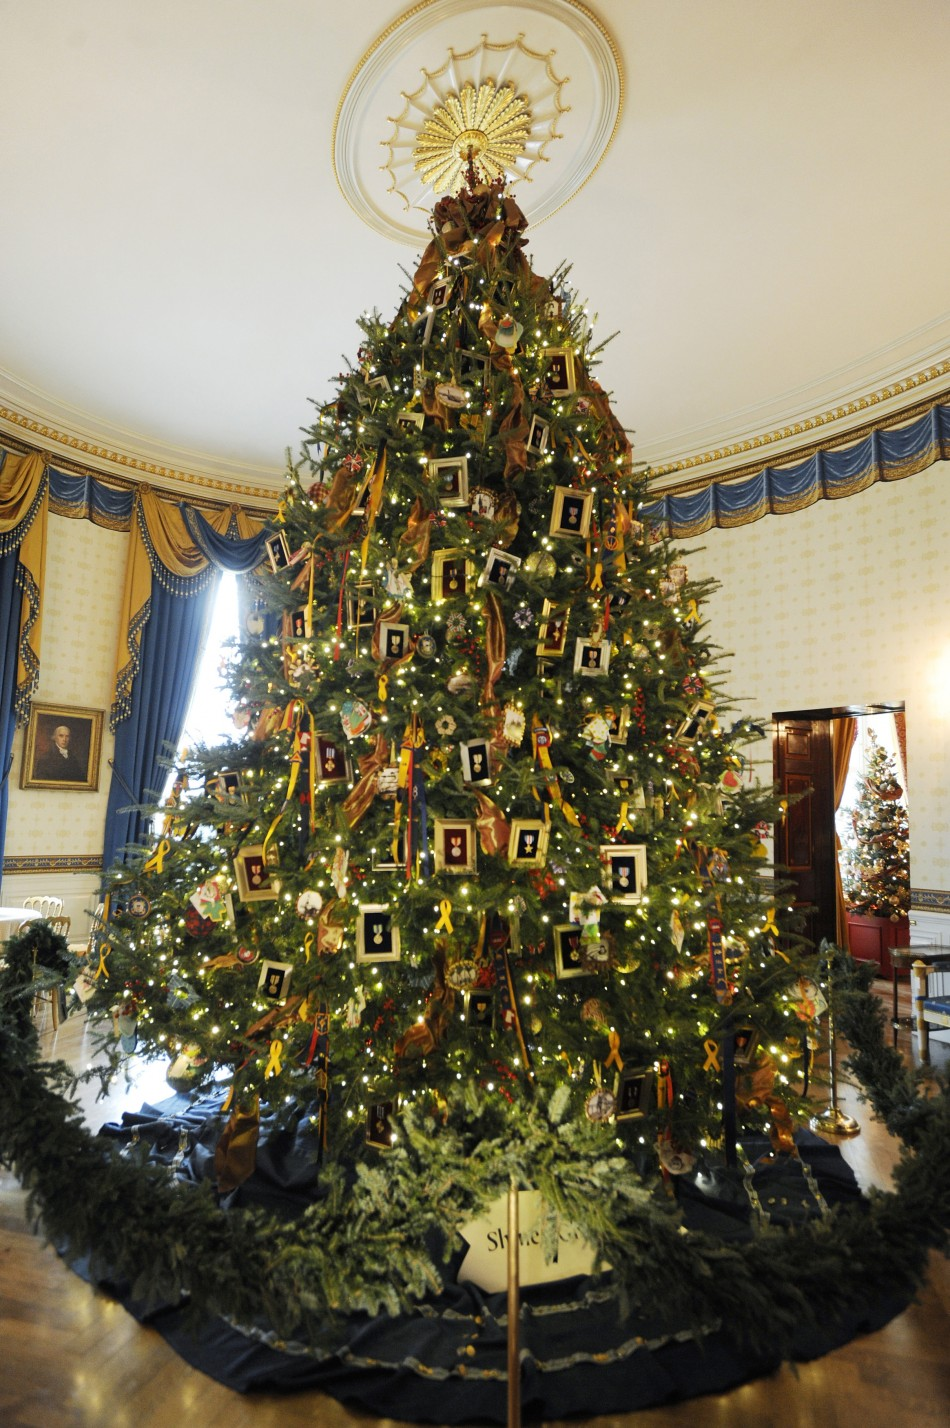 Victorian Christmas Tree.History Undressed The Joys Of A Victorian Christmas By Tara